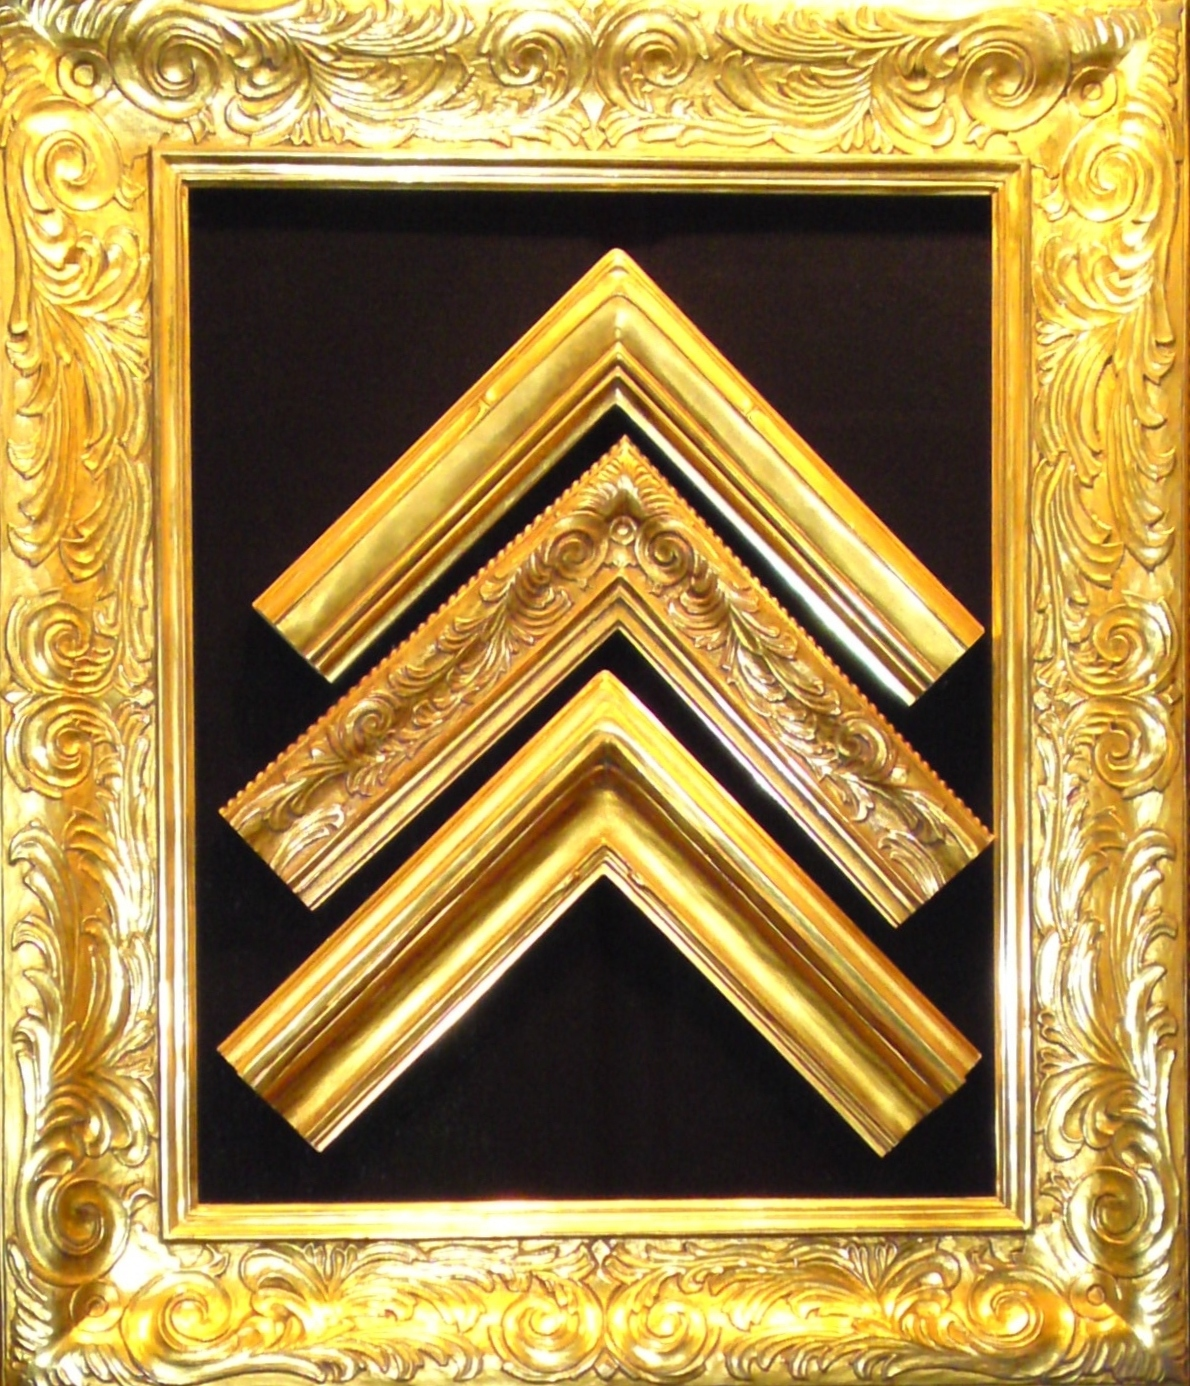 Professional Picture Framers Association - Wikipedia